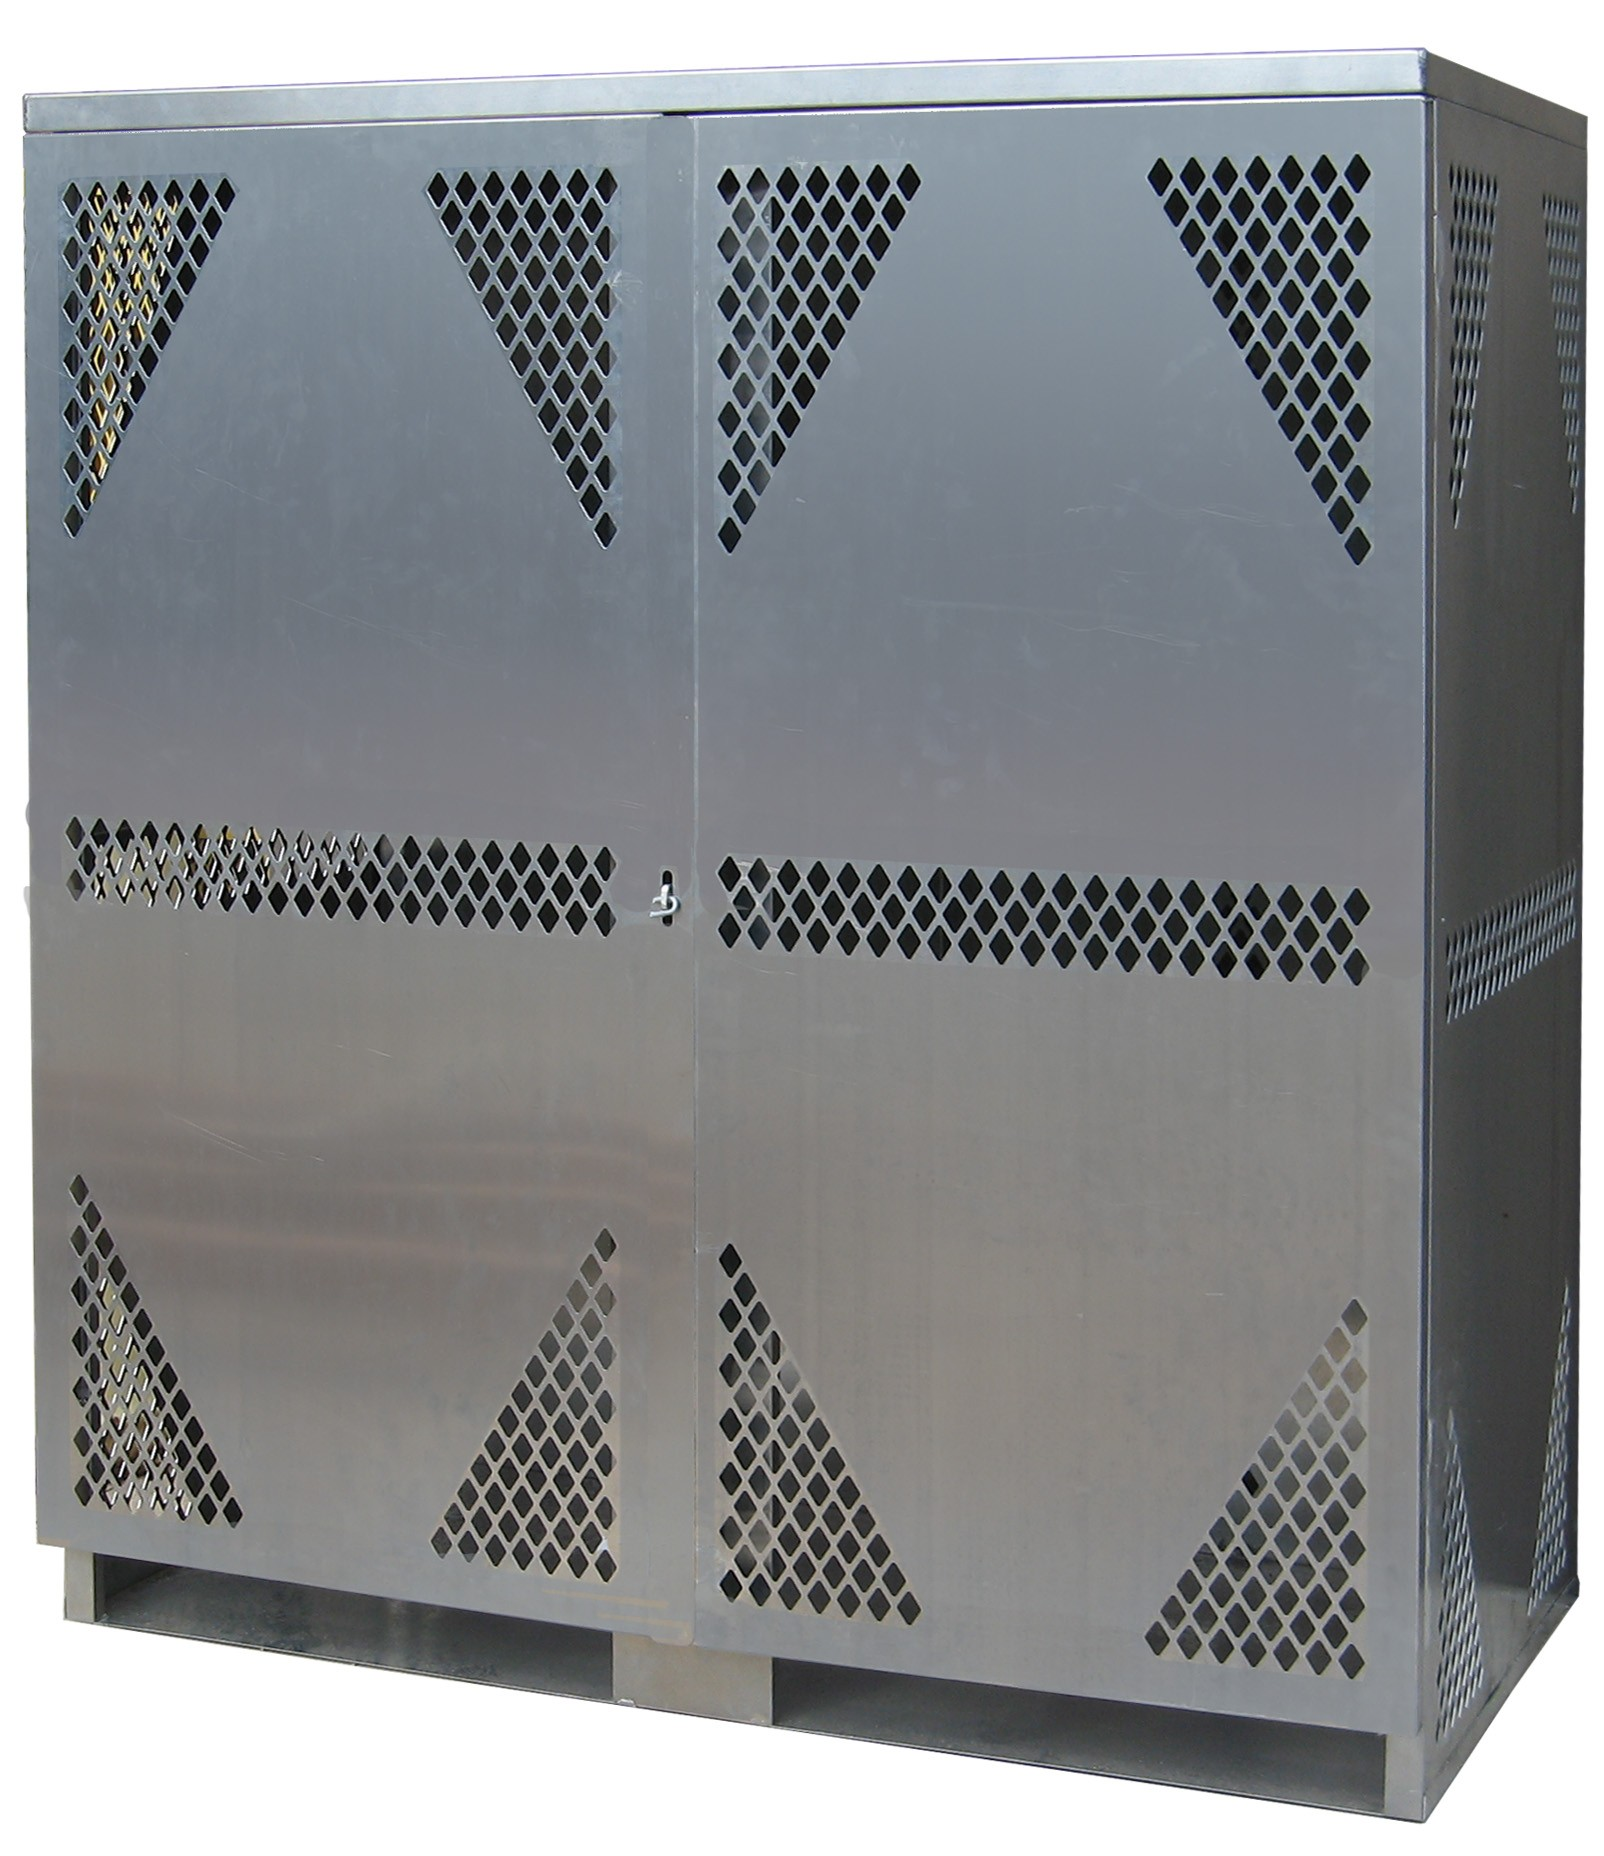 LP16S - Vertical - LP/Oxygen Storage Cabinet - 16 Cyl. Vertical Standard 2-Door